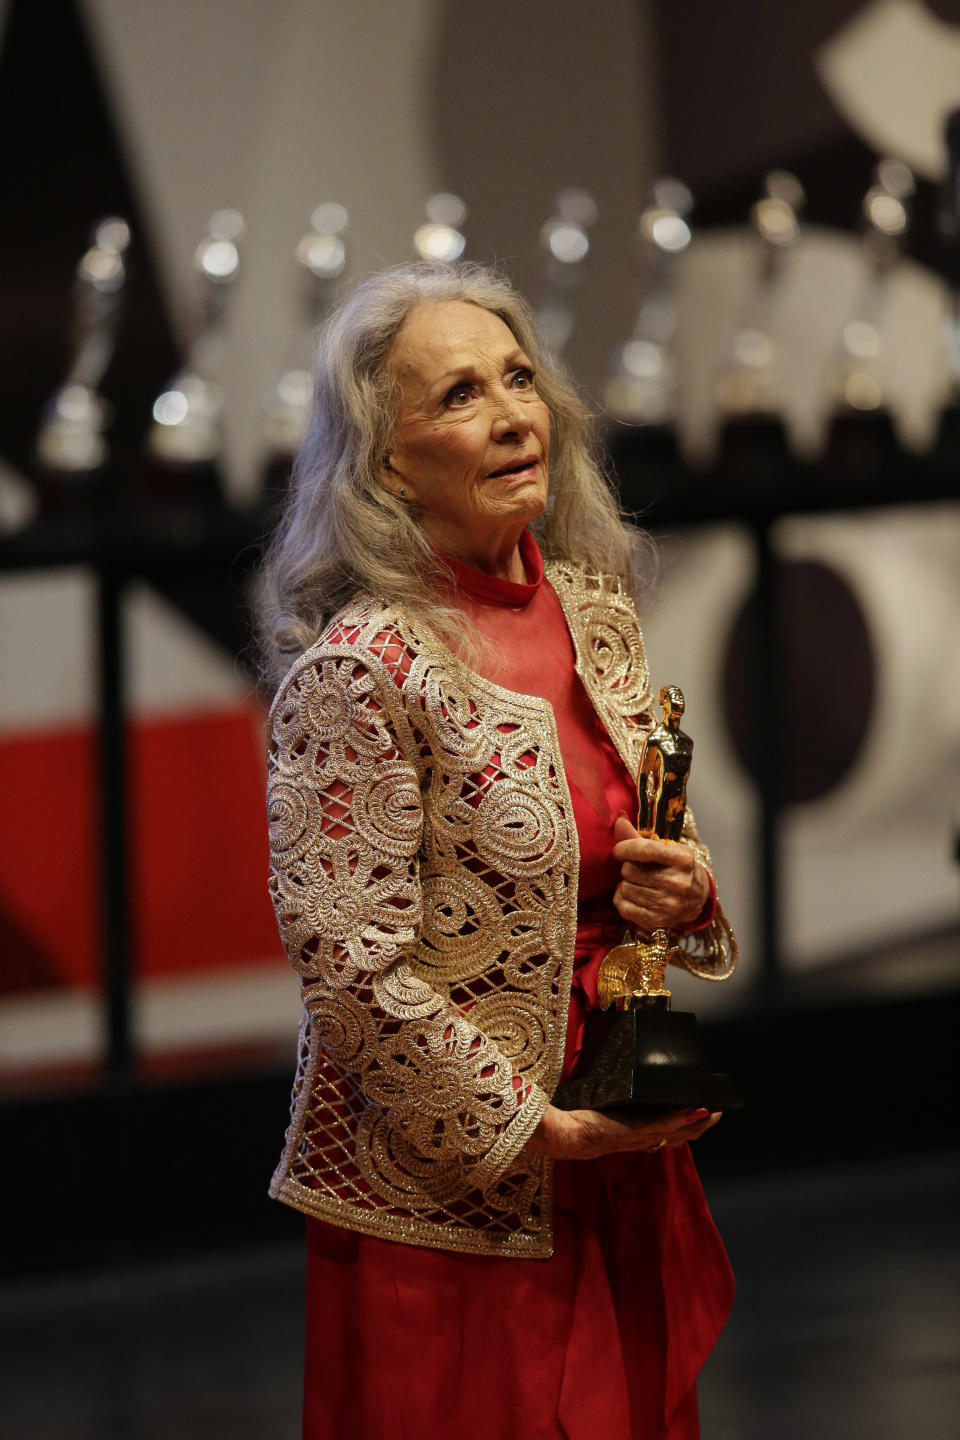 Actress Isela Vega receives the Golden Ariel for lifetime achievement, during the 59th Ariel Awards at the Palace of Fine Arts in Mexico City, Tuesday, July 11, 2017. The Ariel Awards recognize excellence in motion picture making, such as acting, directing and screen writing in Mexican cinema.(AP Photo/Rebecca Blackwell)